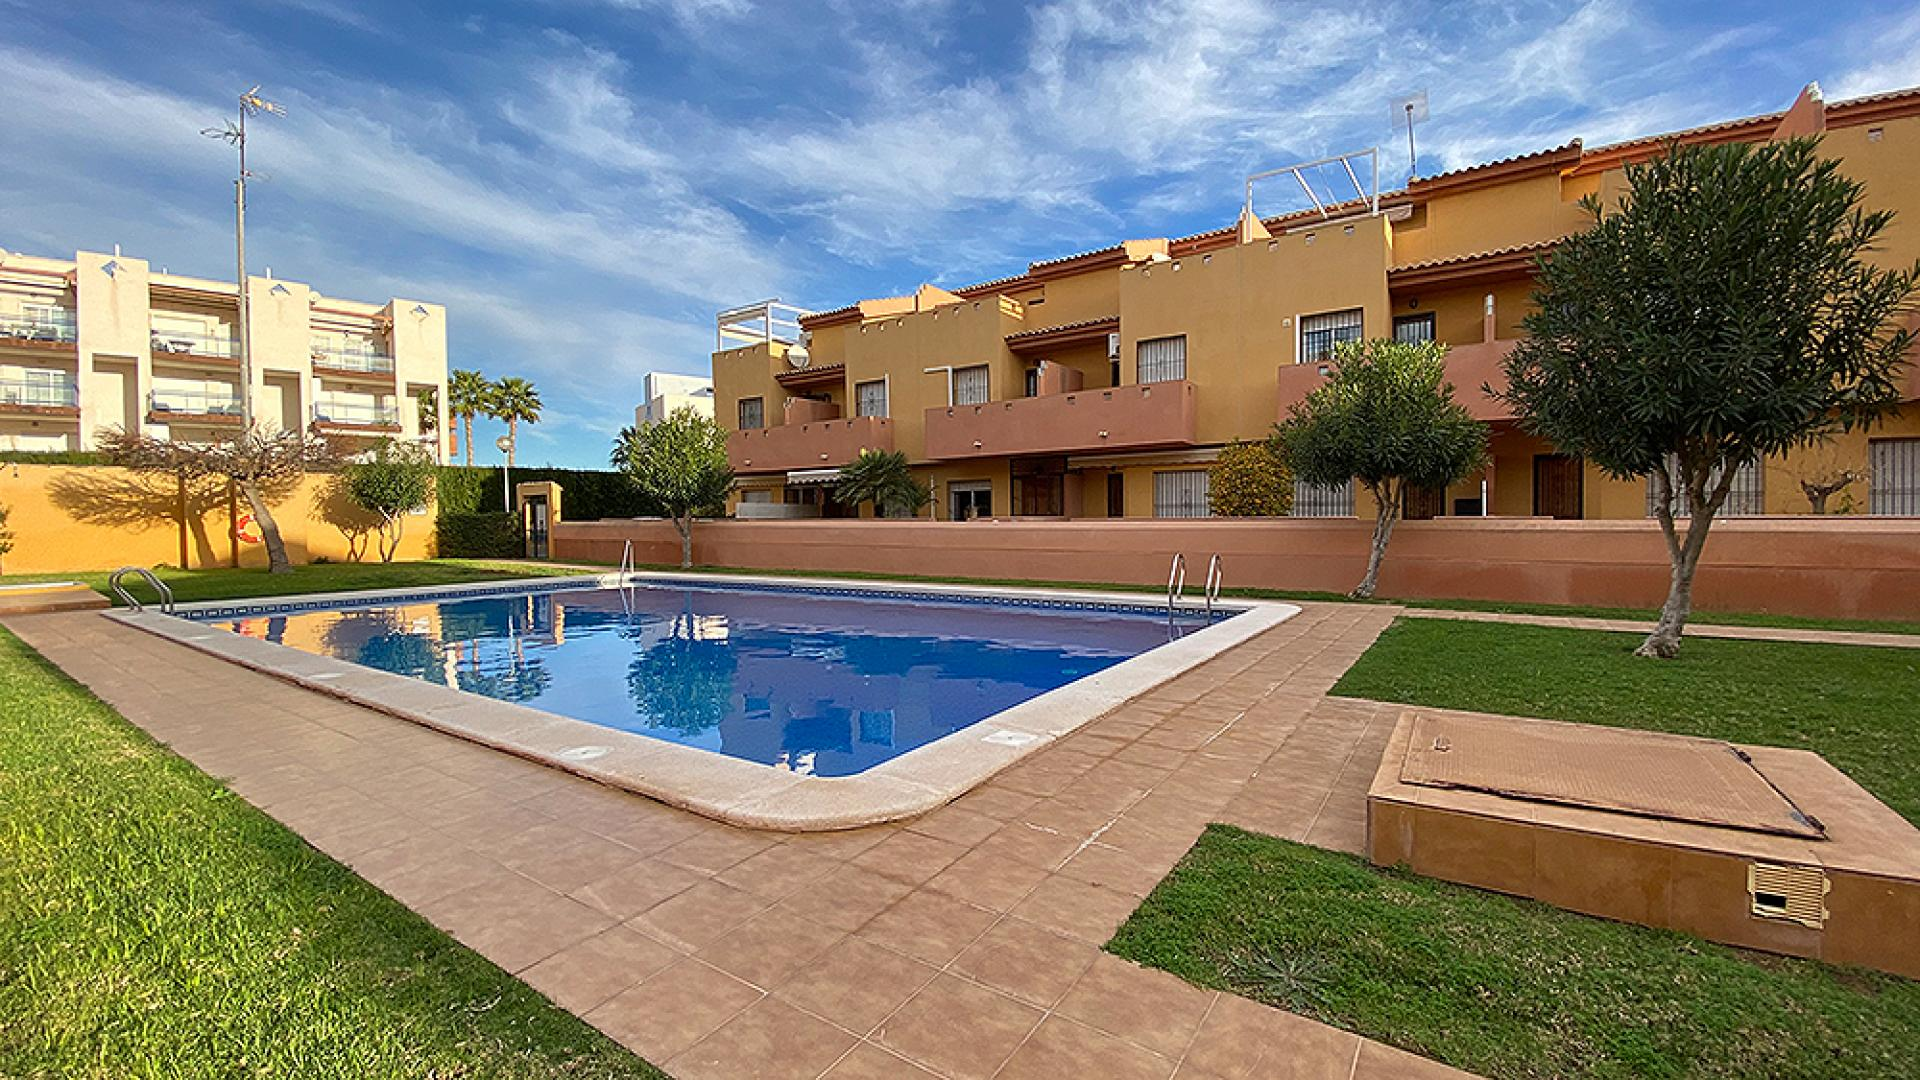 Townhouse in Cabo Roig (Alicante)